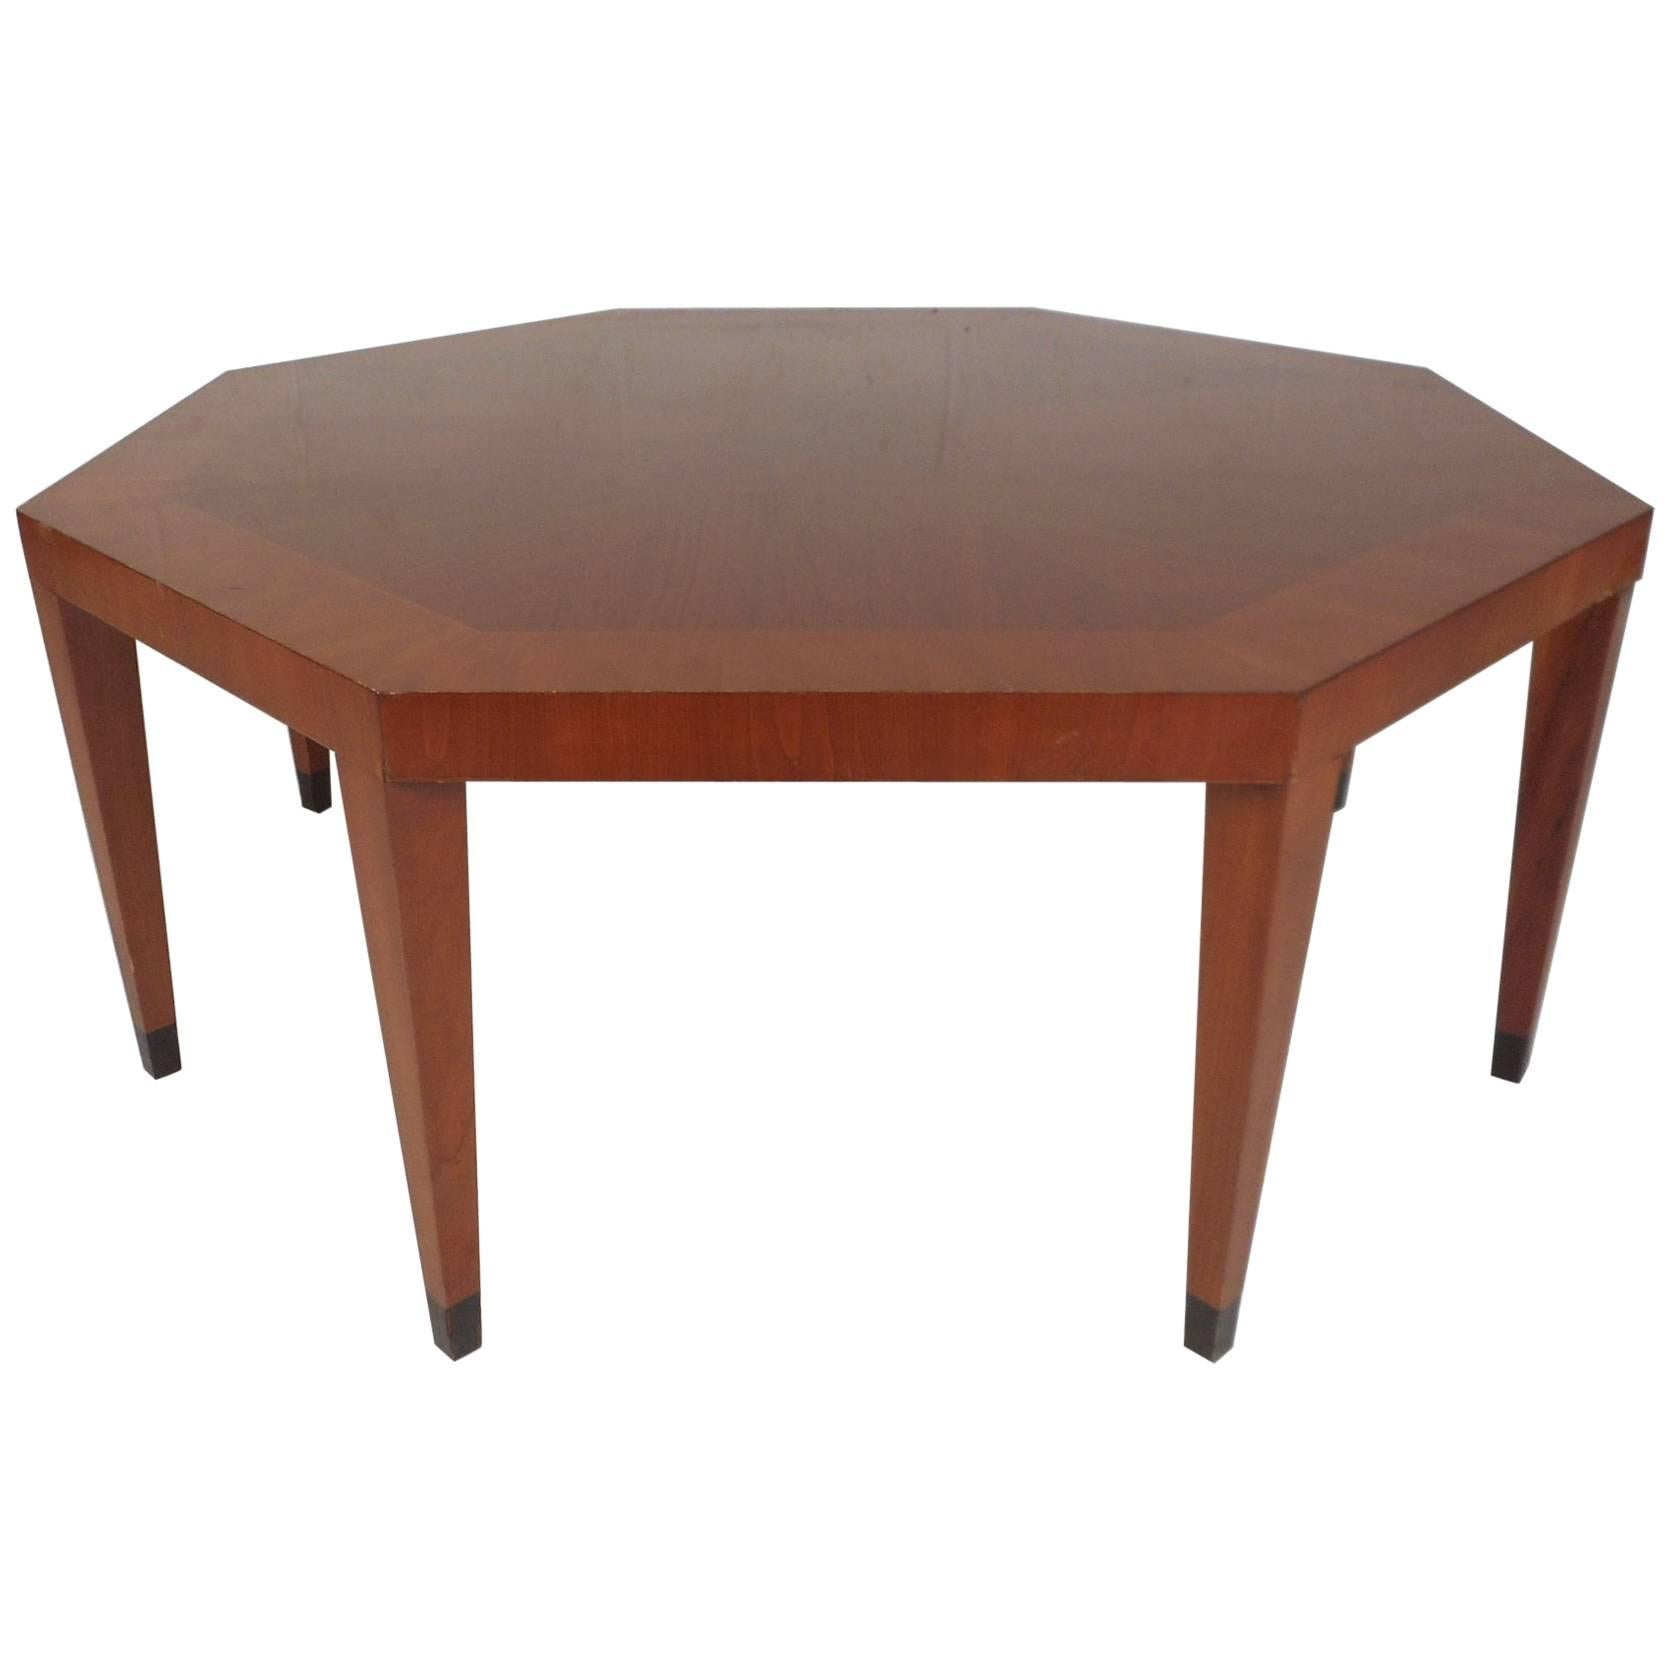 Baker Furniture Company Coffee and Cocktail Tables 53 For Sale at